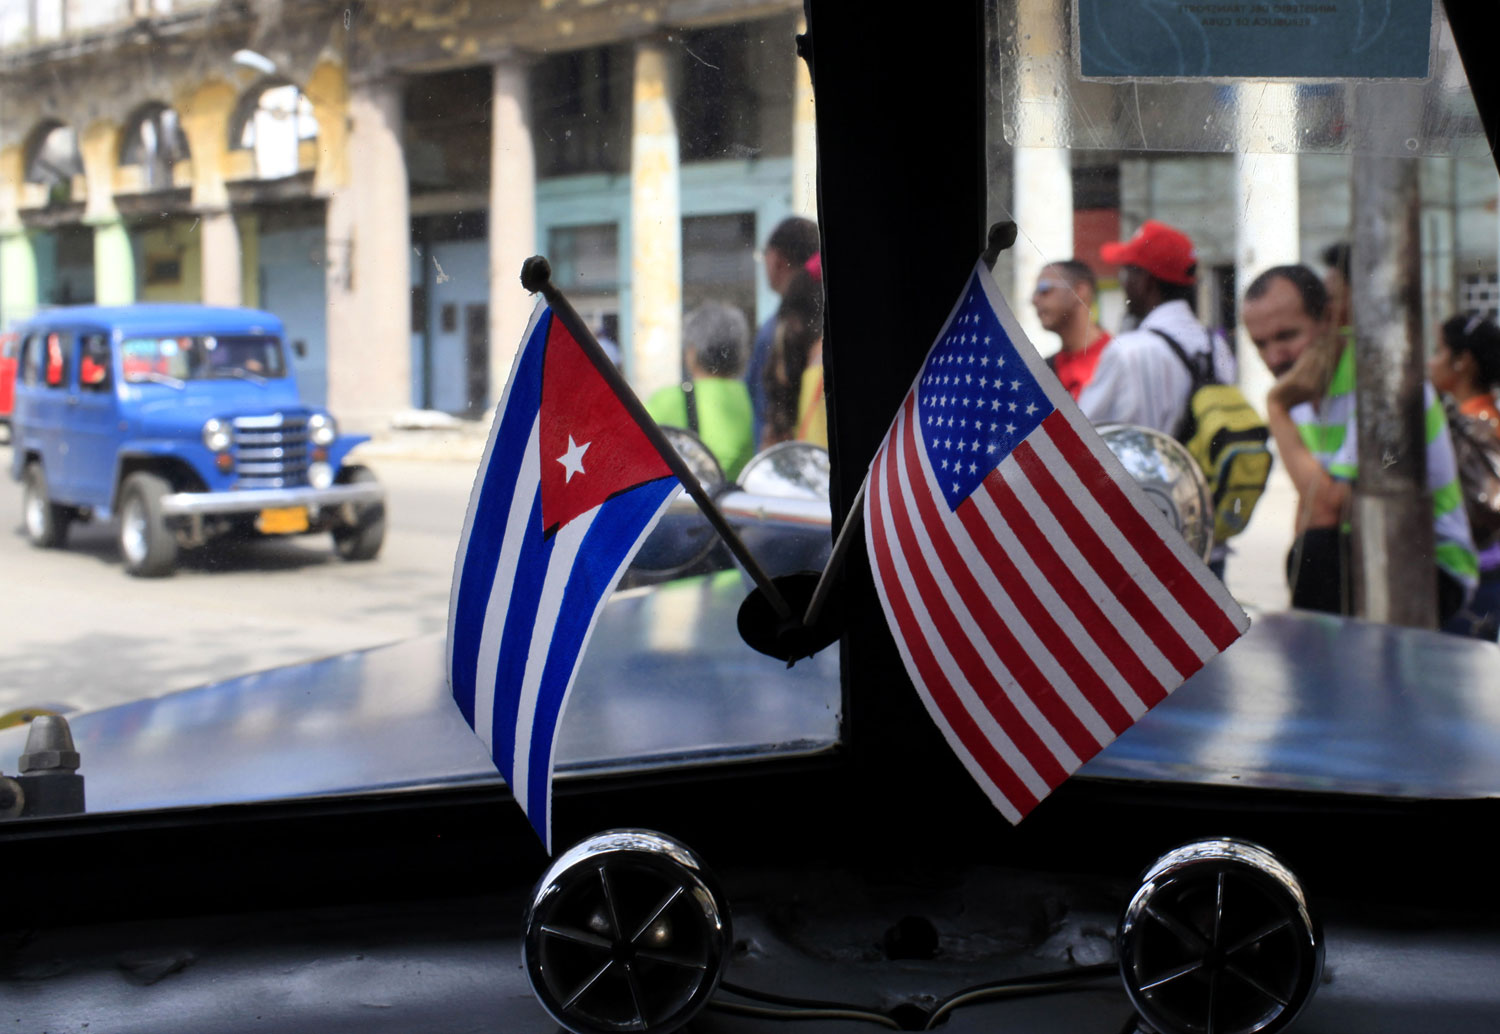 Miniature-flags-representing-Cuba-and-the-US-are-displayed-on-the-dash-of-a-car-in-Havana-Cuba.-AP-PhotoFranklin-Reyes